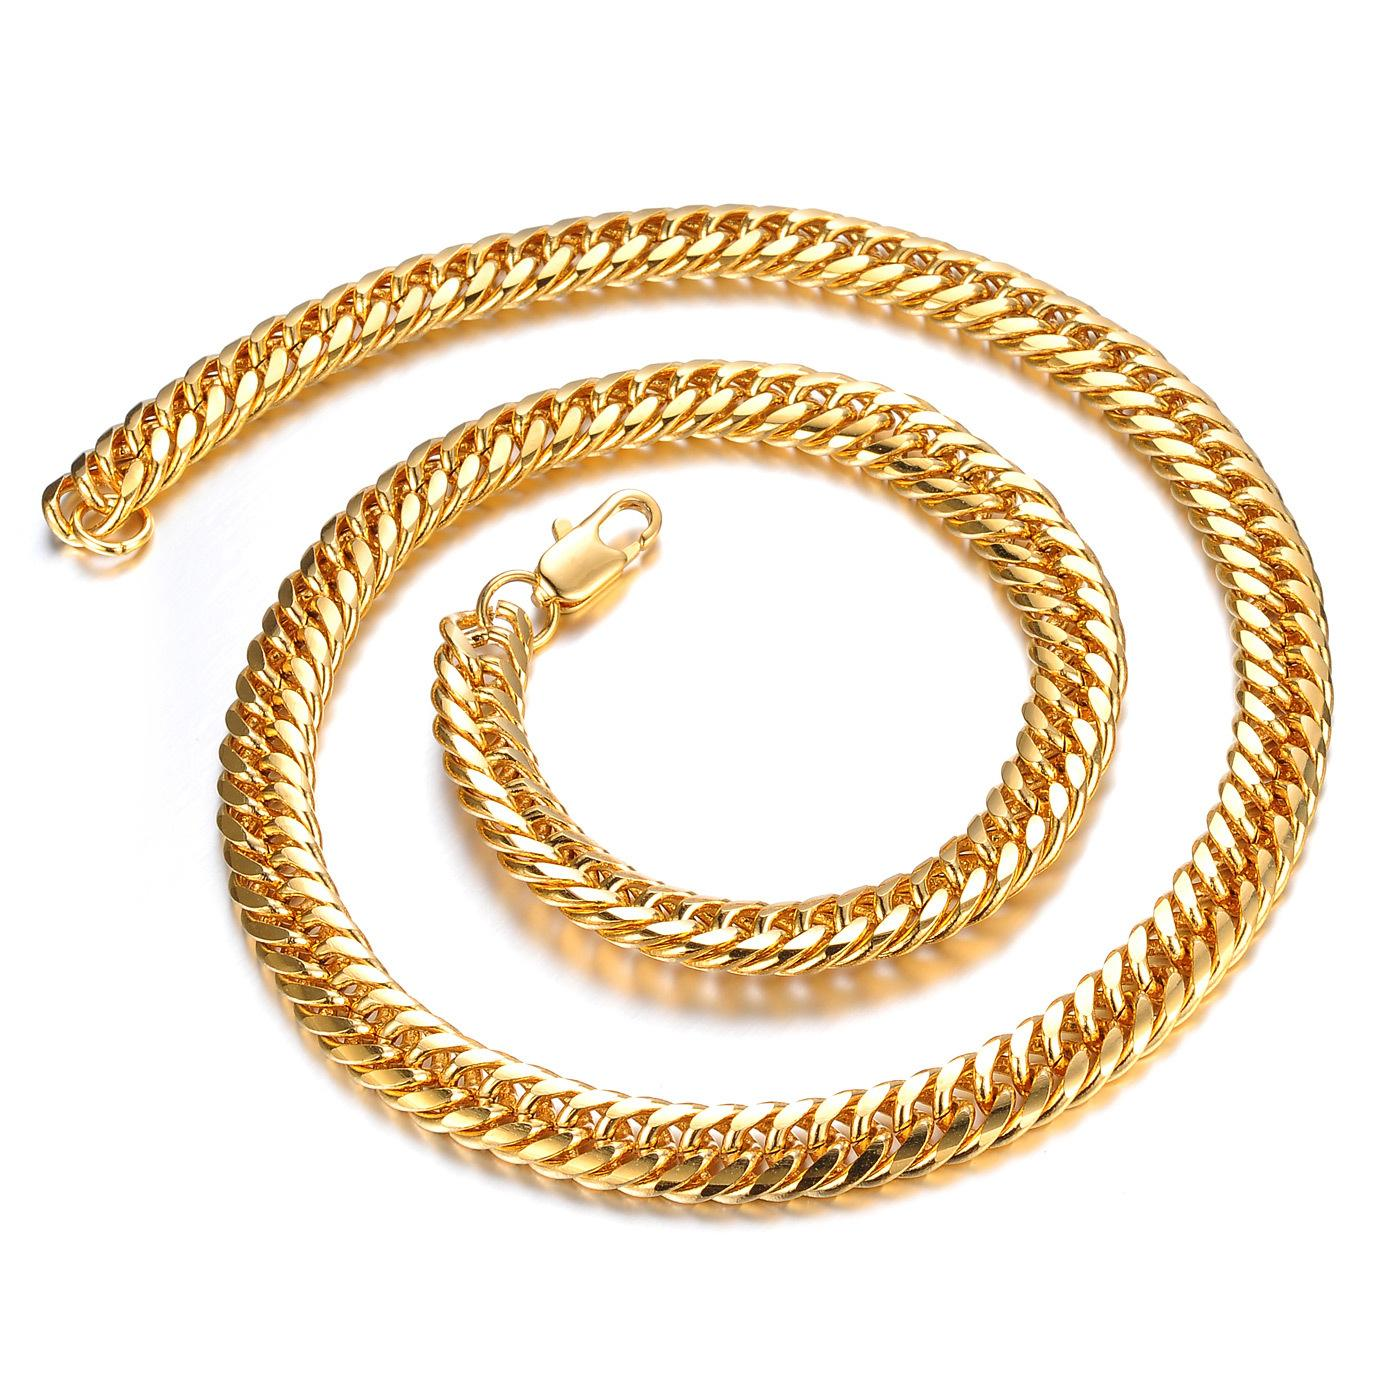 Hot Men's Classic Long 18k Yellow Gold Plated Cuban Link Chain Necklace 8  Mm Fashion Jewelry Mens Necklaces Gold Chains Xl5001